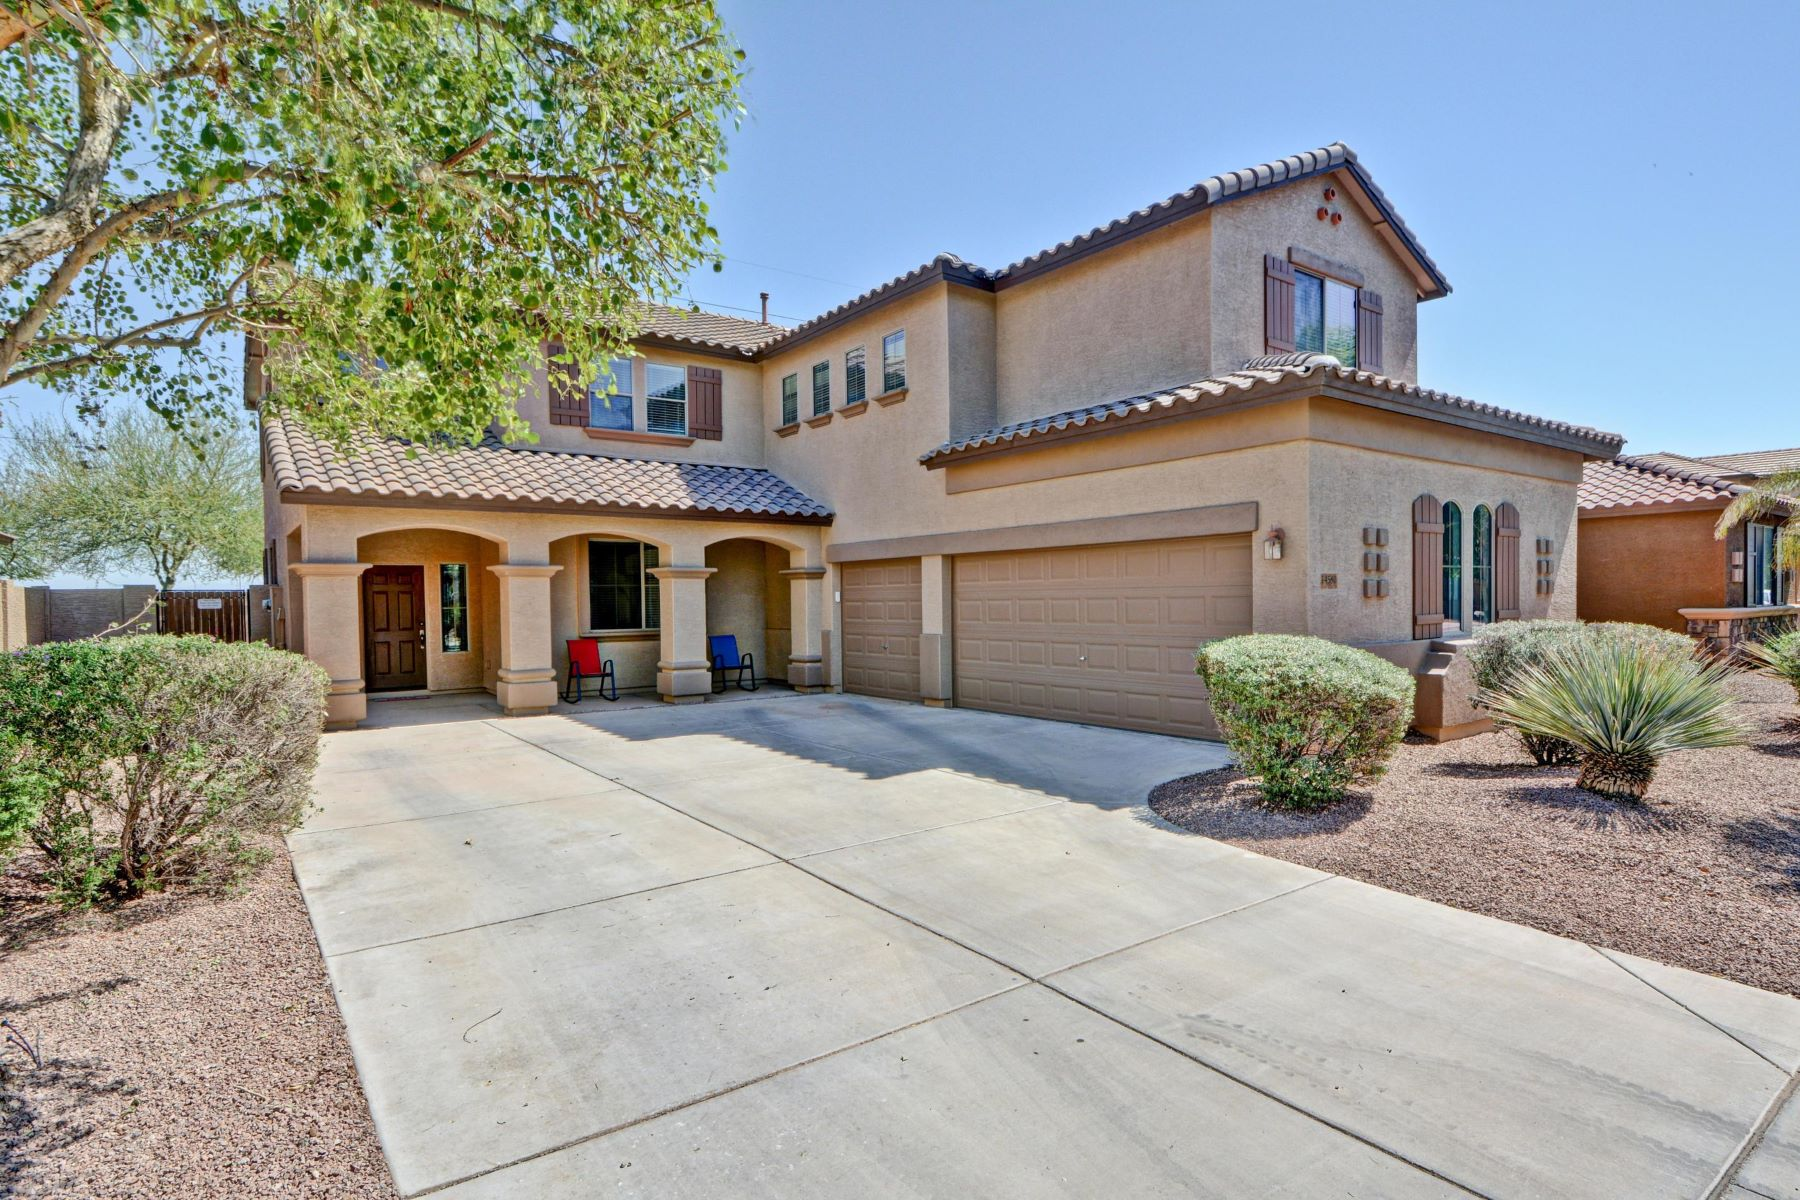 Single Family Homes for Sale at Mountain Gate 14580 W SHAW BUTTE DR Surprise, Arizona 85379 United States